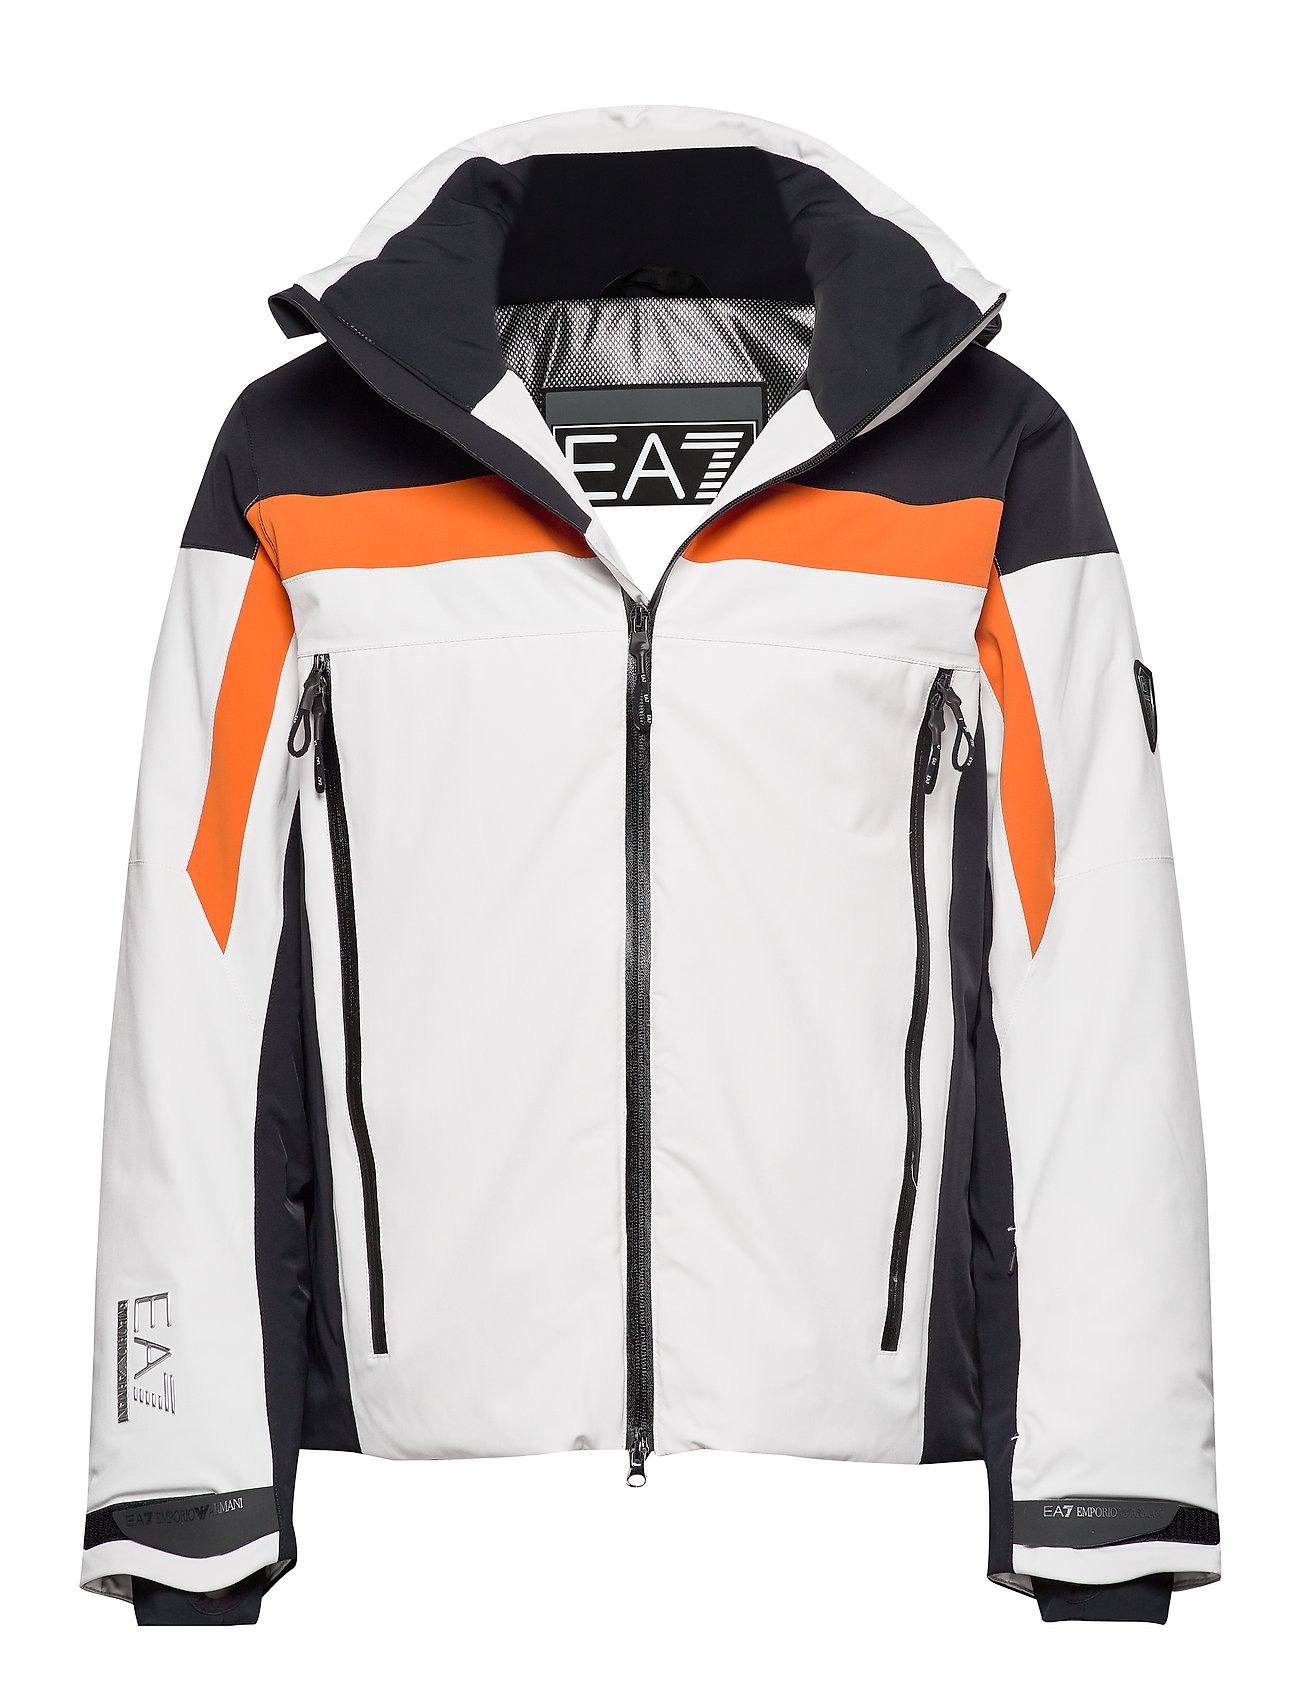 EA7 SKI JACKET - NIMBUS CLOUD